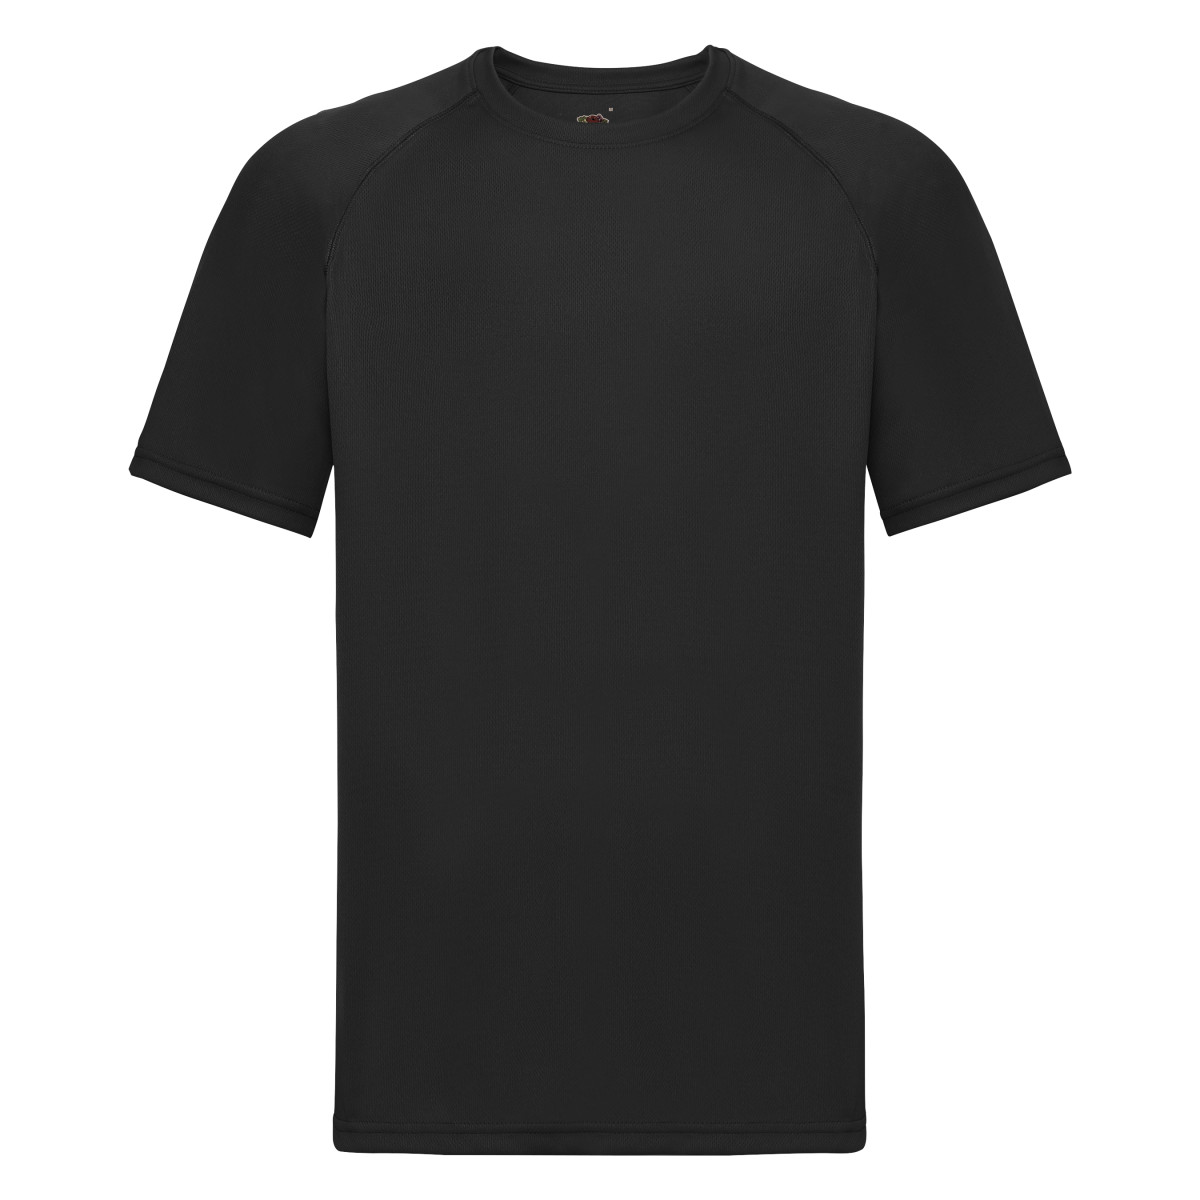 OIAM PE T-Shirt Adult Sizes